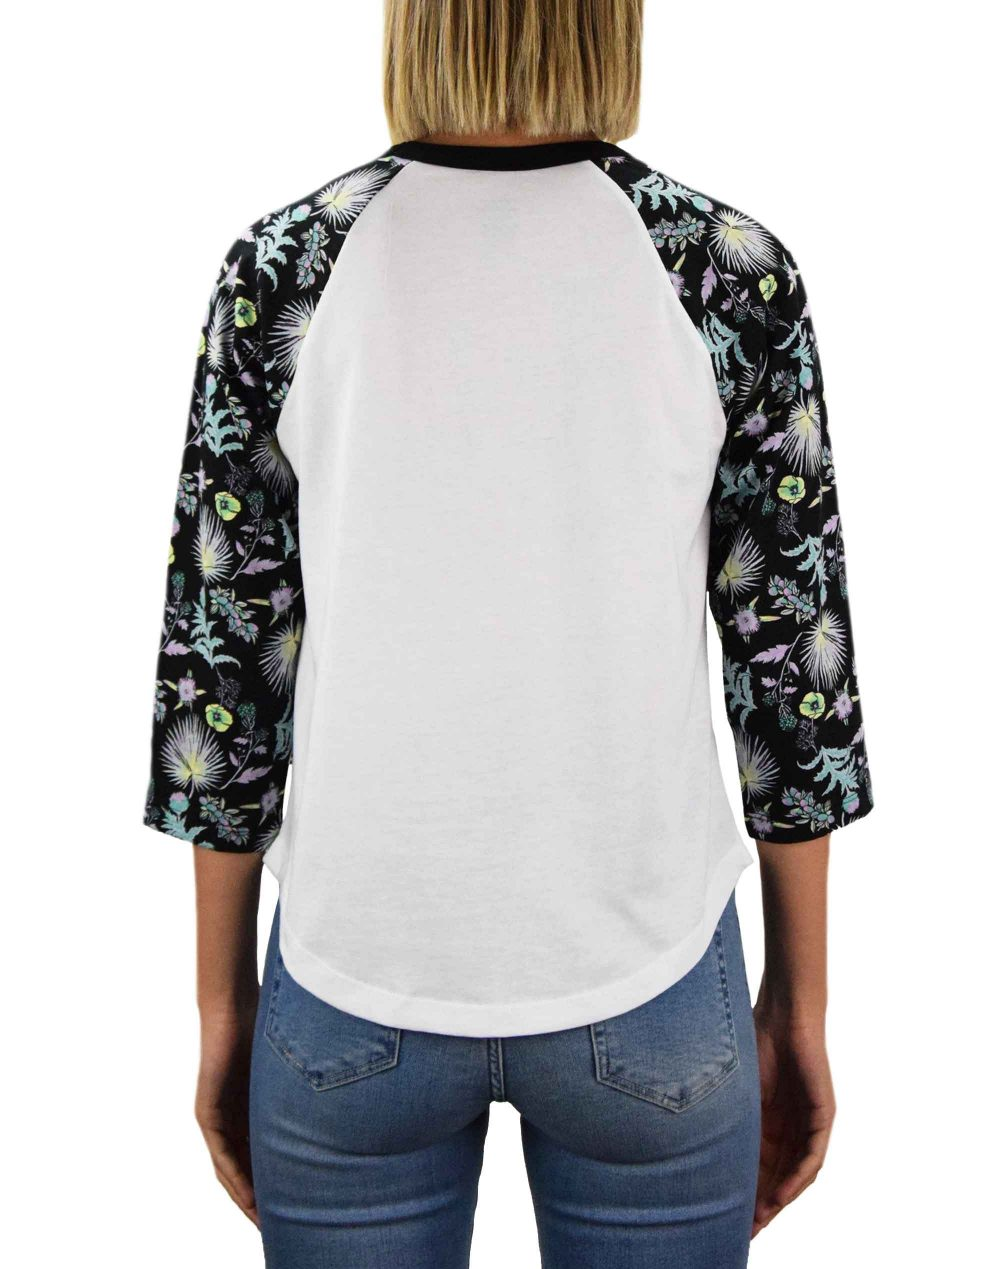 Vans Califas Tee (VN0A53PZZFK1) White/Califas Black